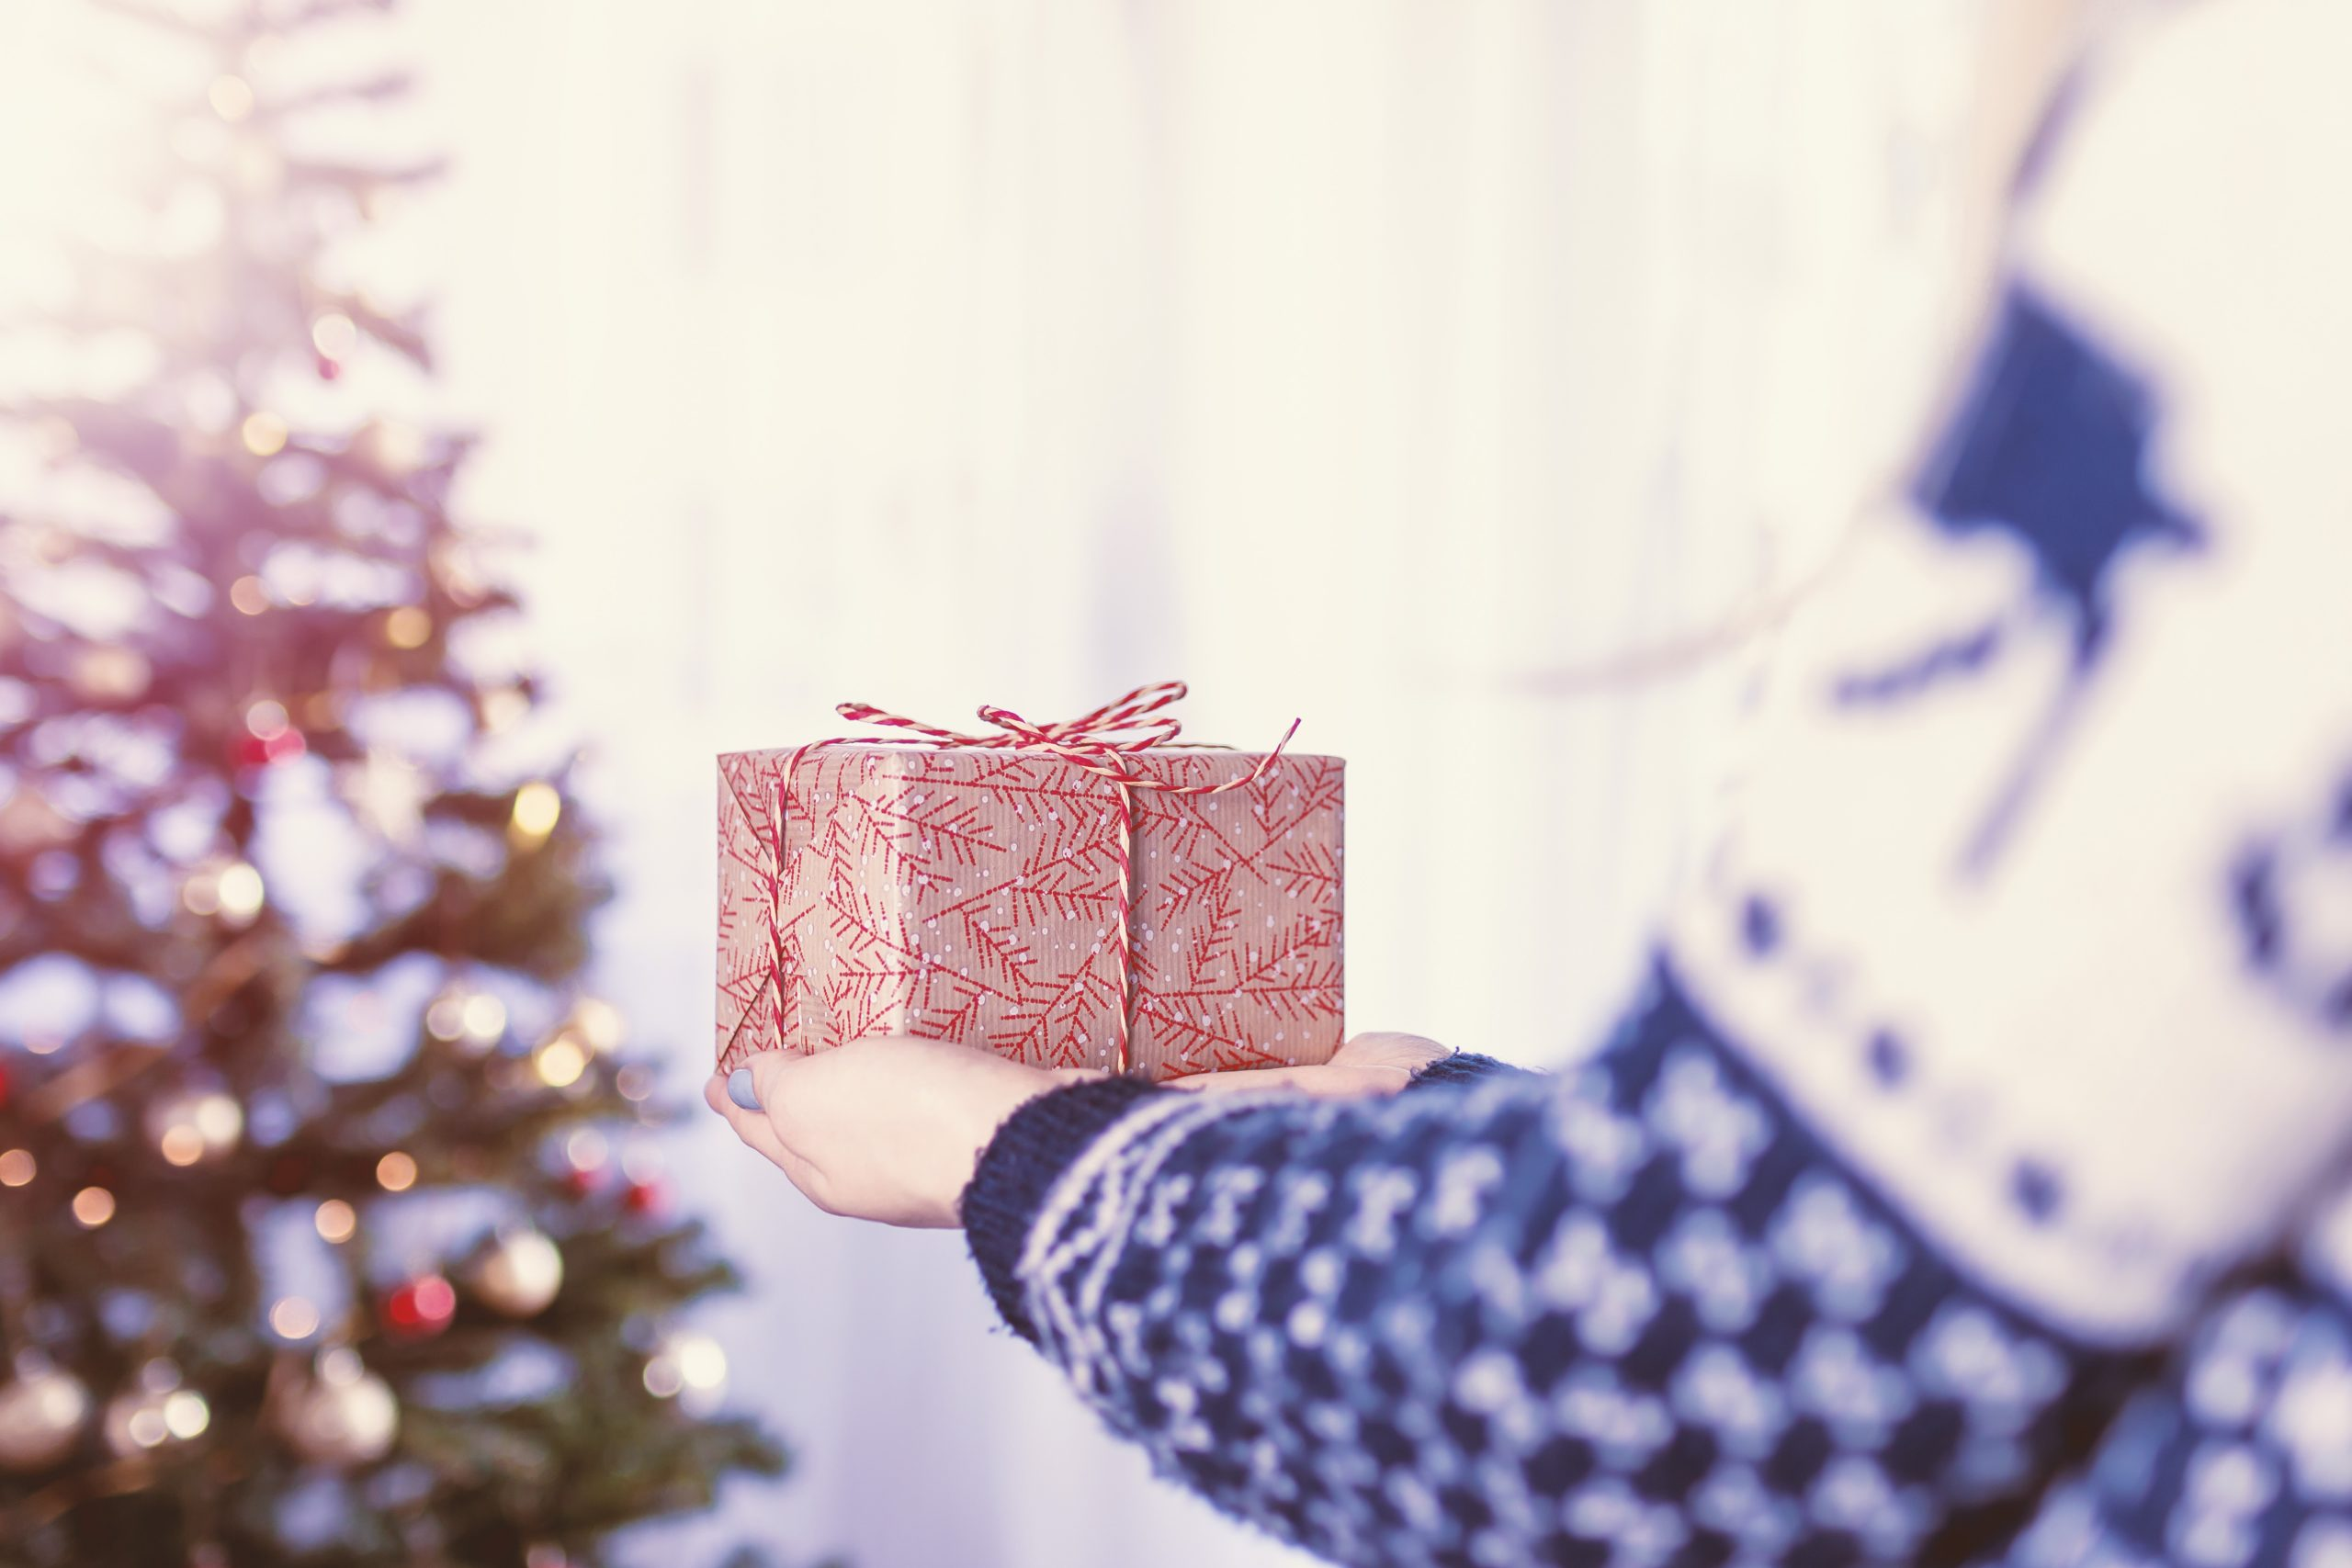 A red gift being held by a person